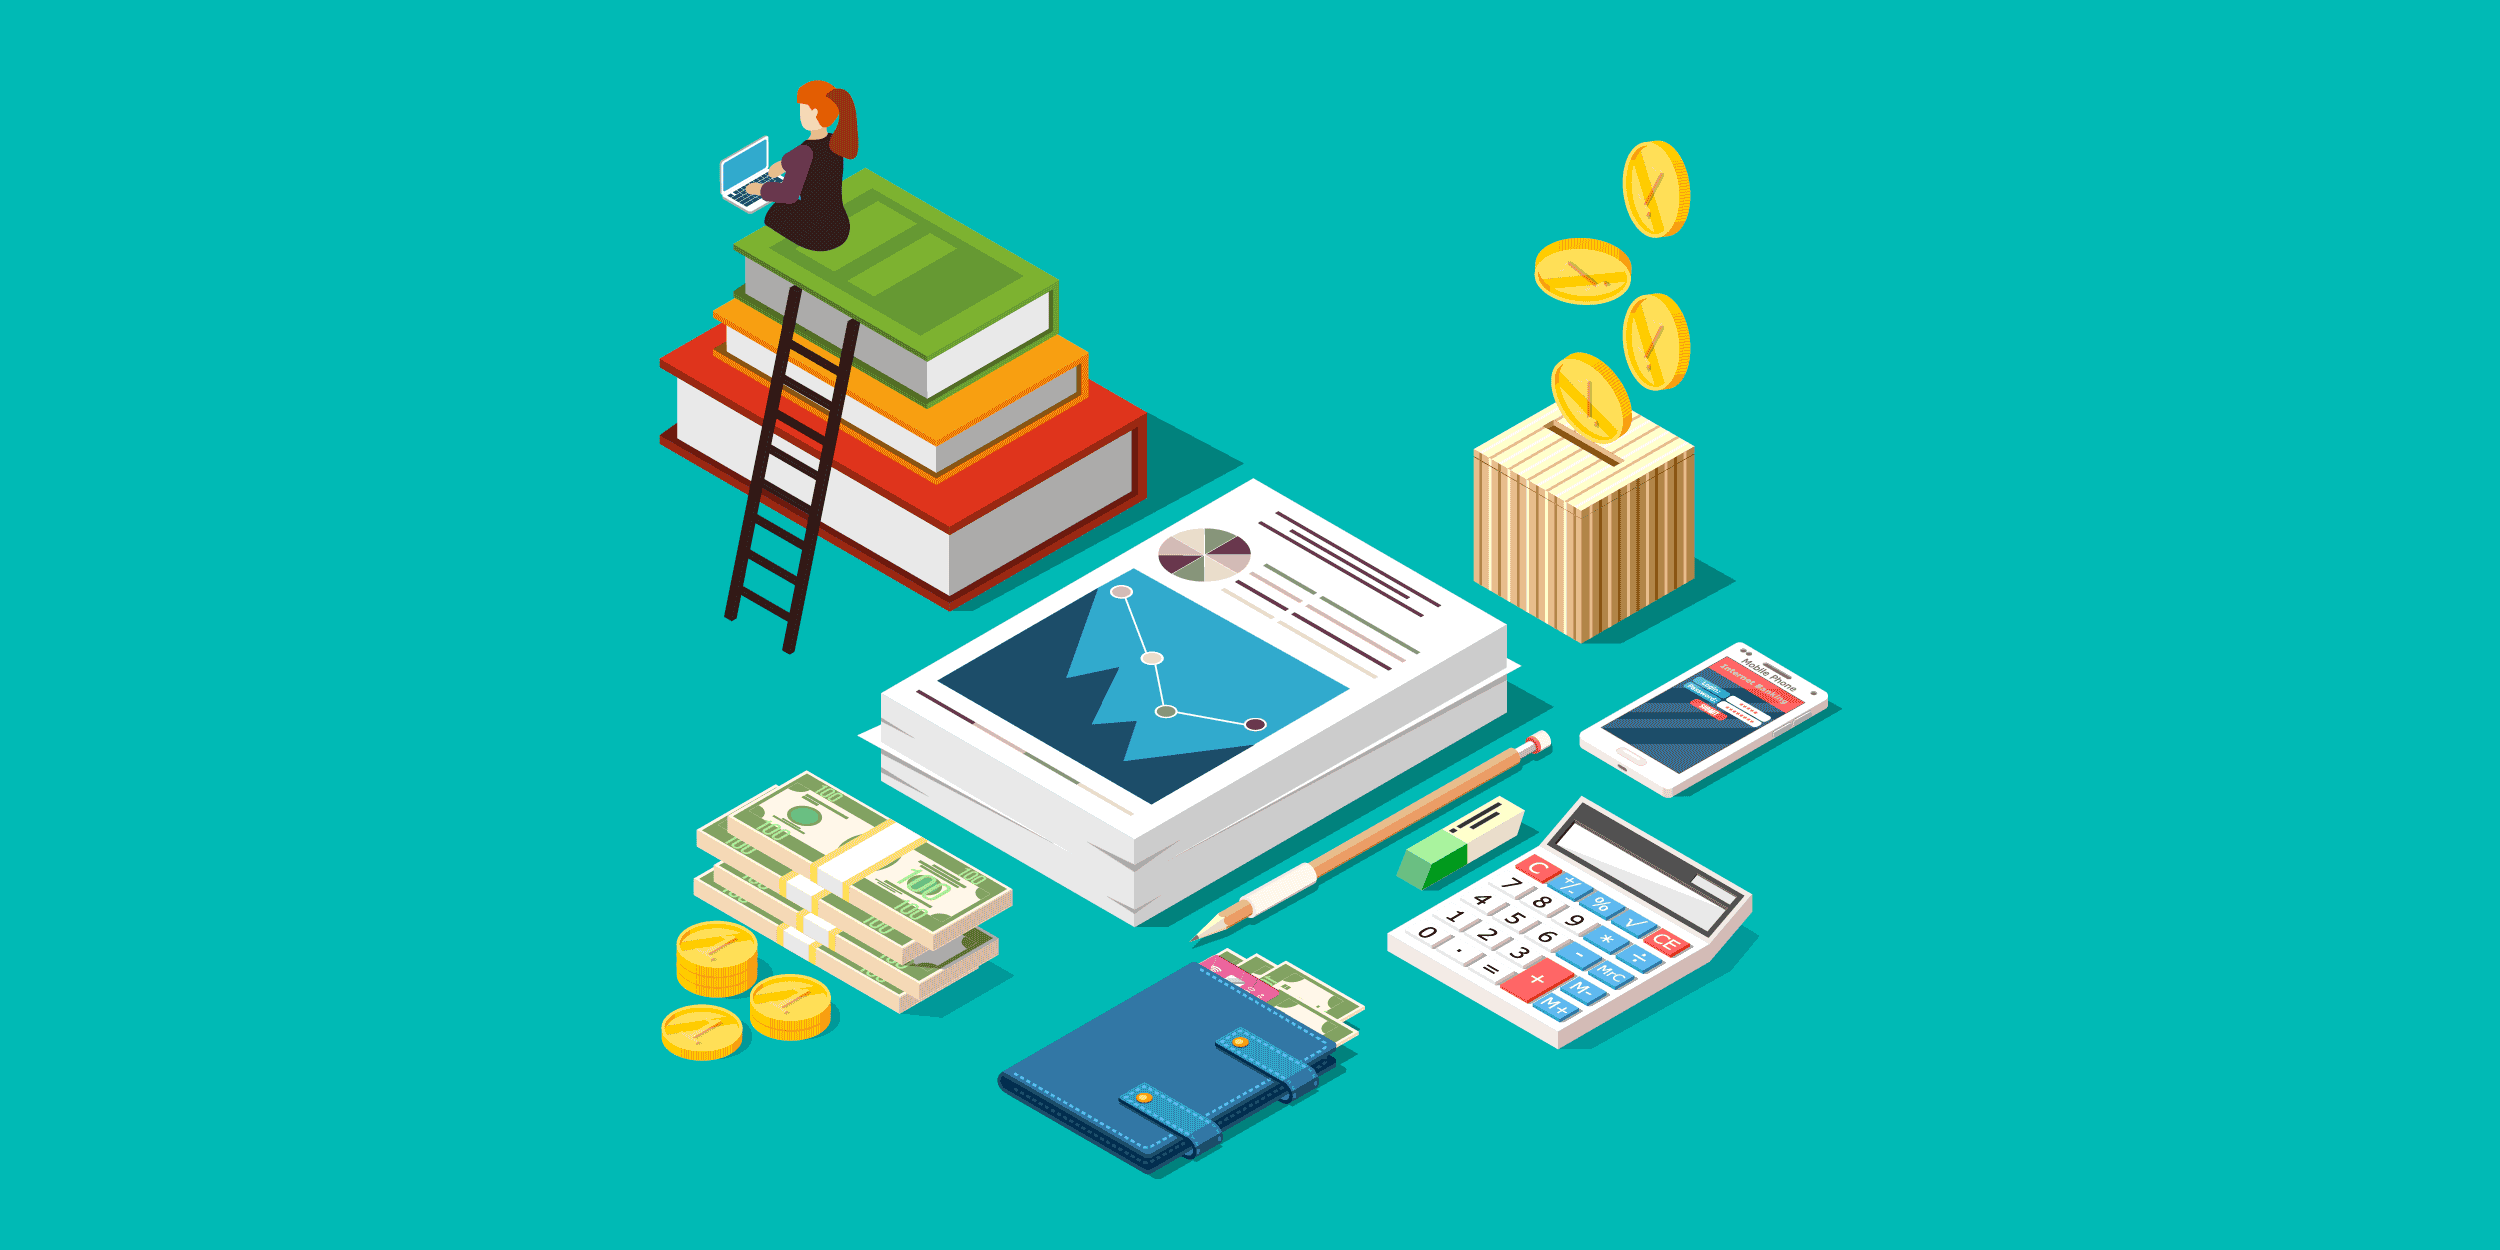 an illustration of a woman sitting on a stack of books working on nonprofit accounting, next to reports, cash, credit cards, a calculator, a piggy bank, a phone, a pencil, and an eraser